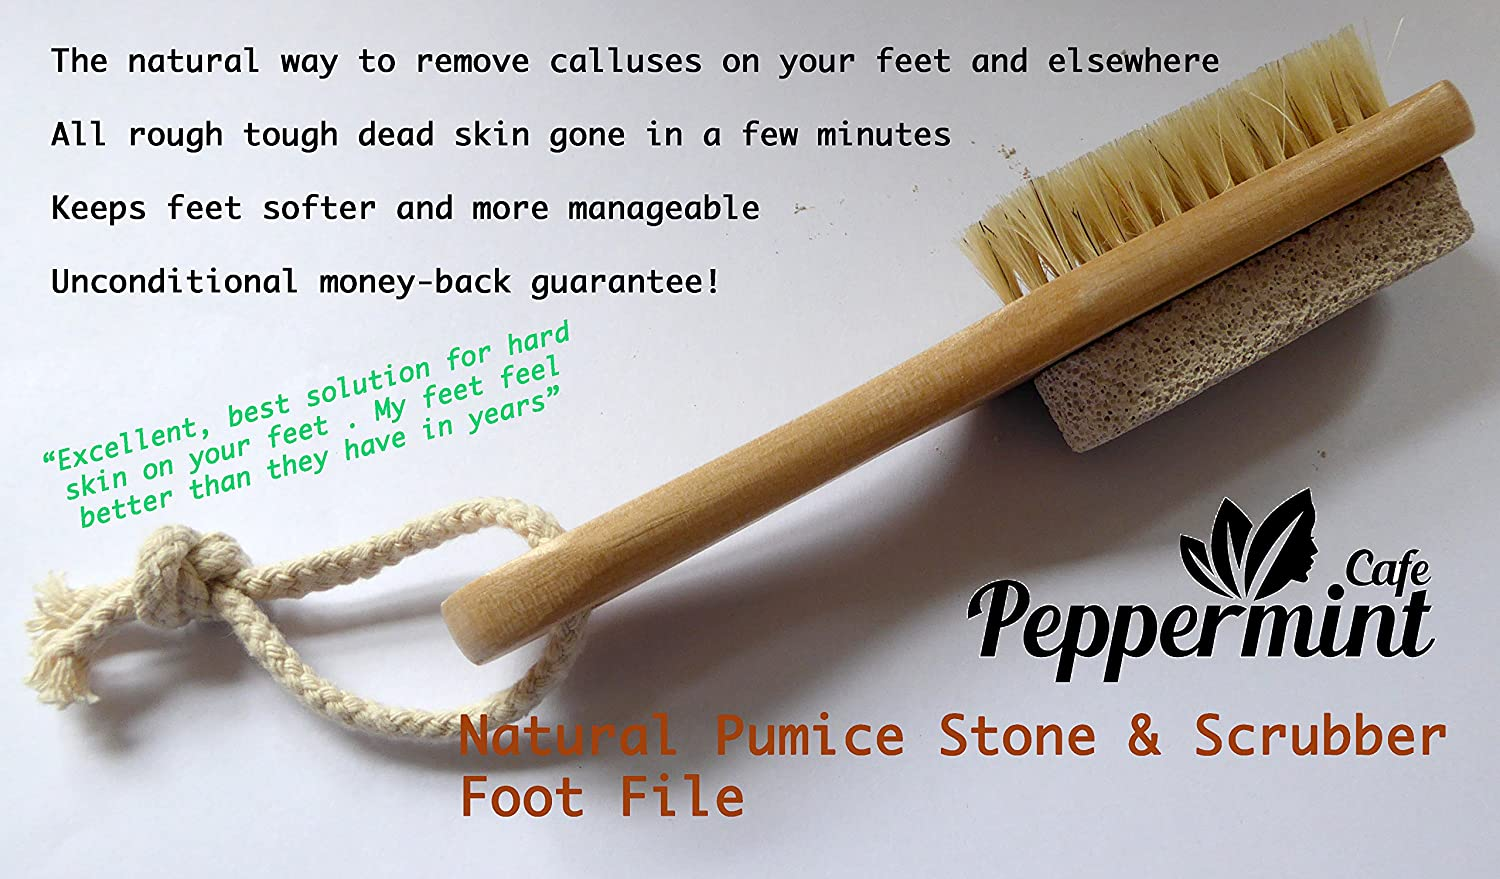 Peppermint Cafe - Natural Pumice Stone & Scrubber Foot File | The Natural Way to Remove calluses on Your feet and Elsewhere All Rough Tough Dead Skin Gone in a Few Minutes